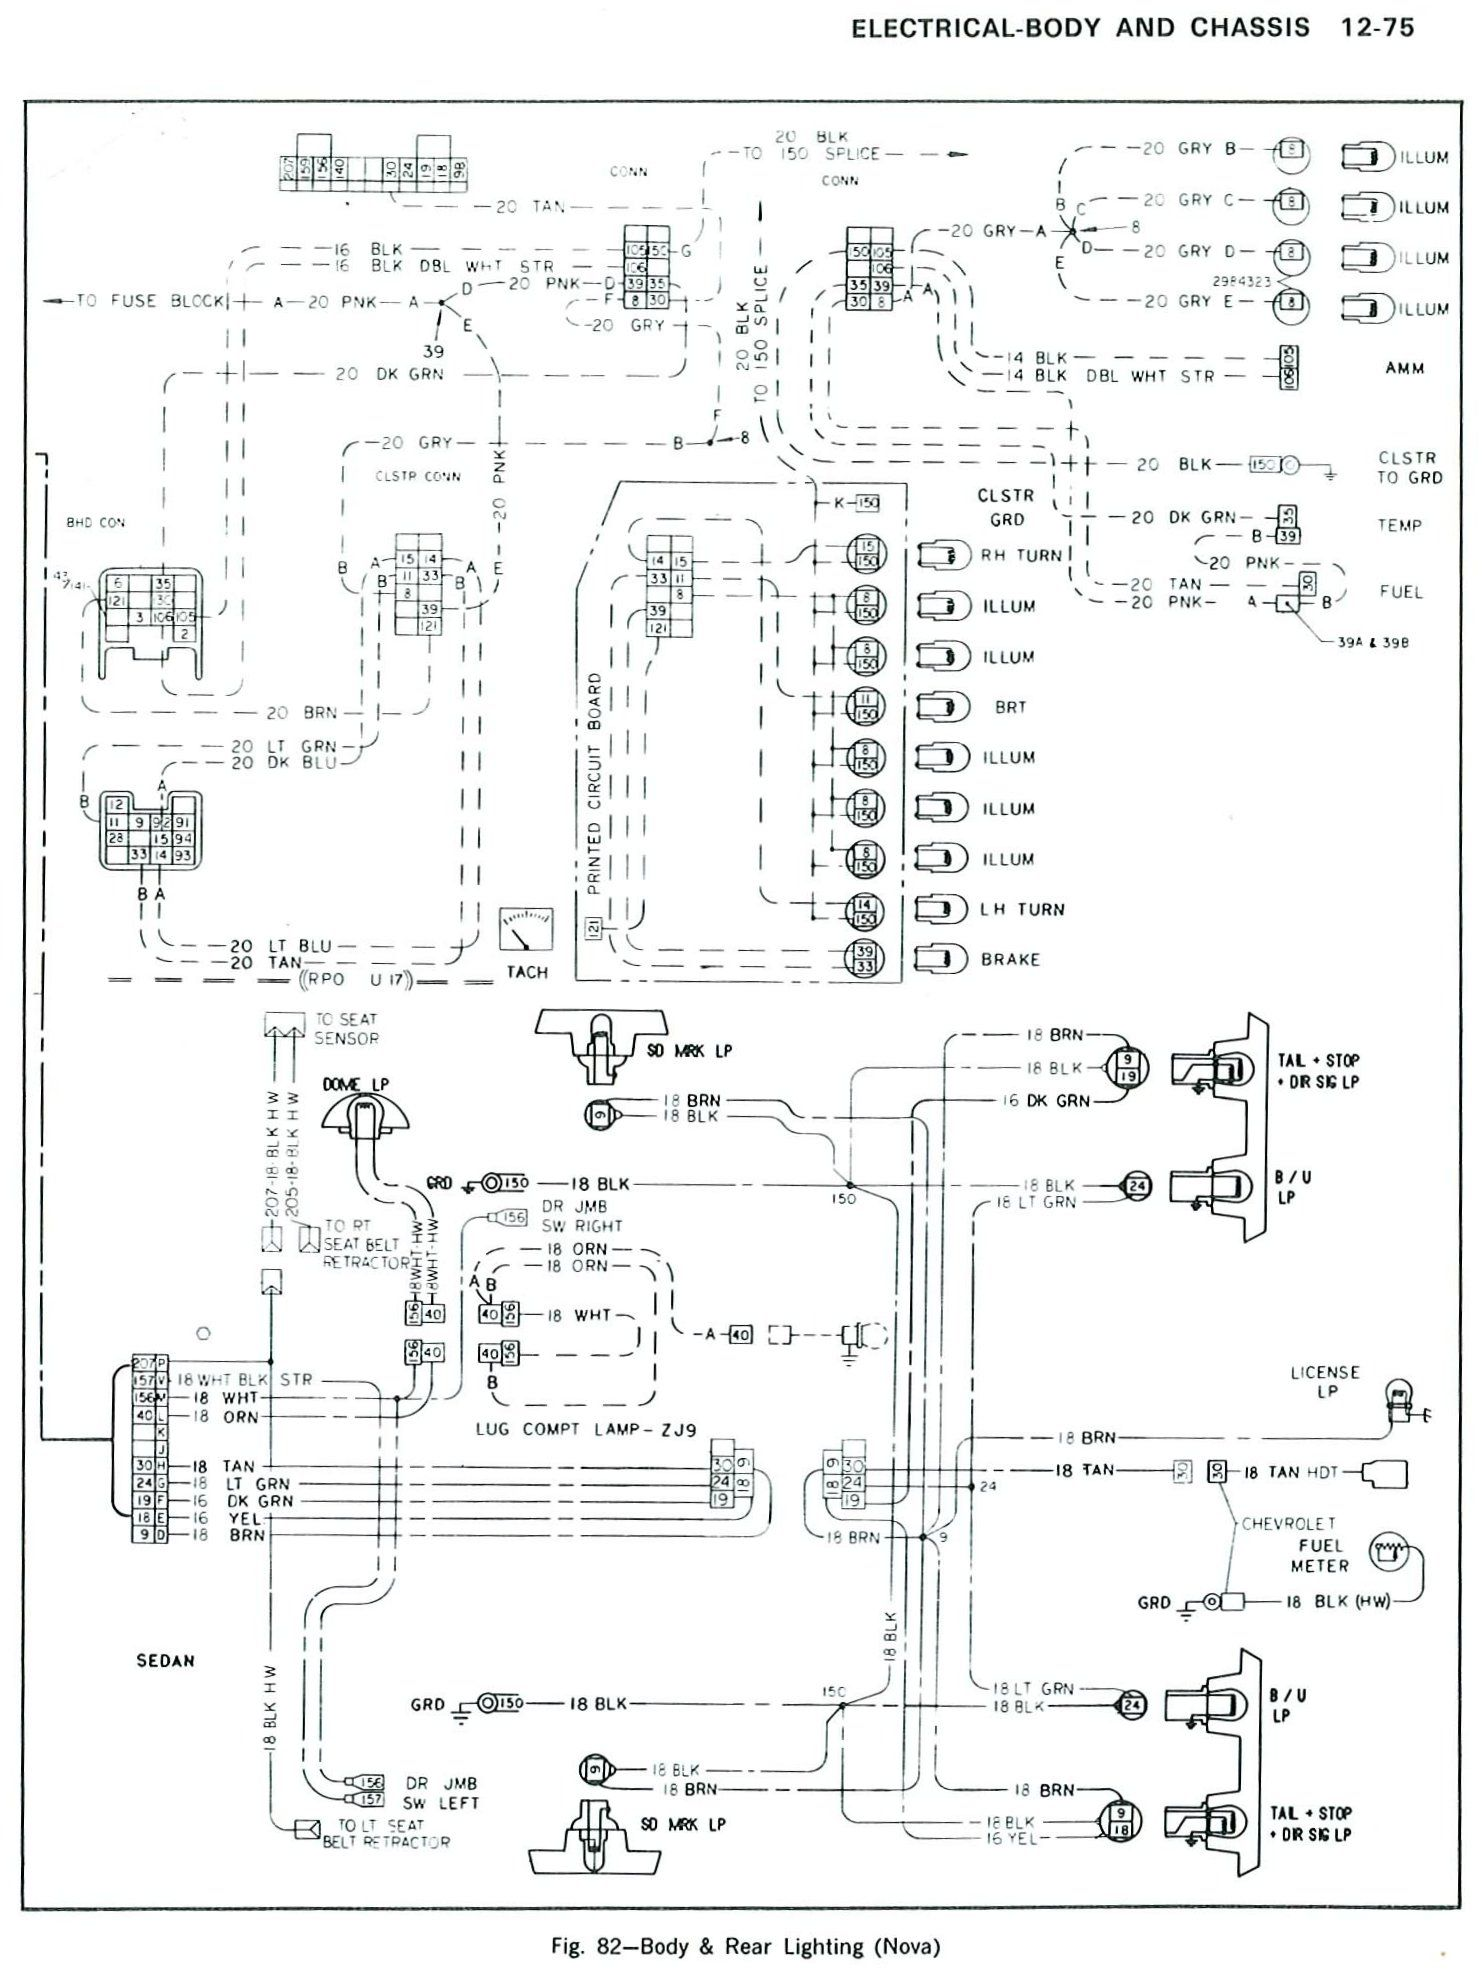 85 chevy silverado wiring diagram roller shutter key switch truck looking at the